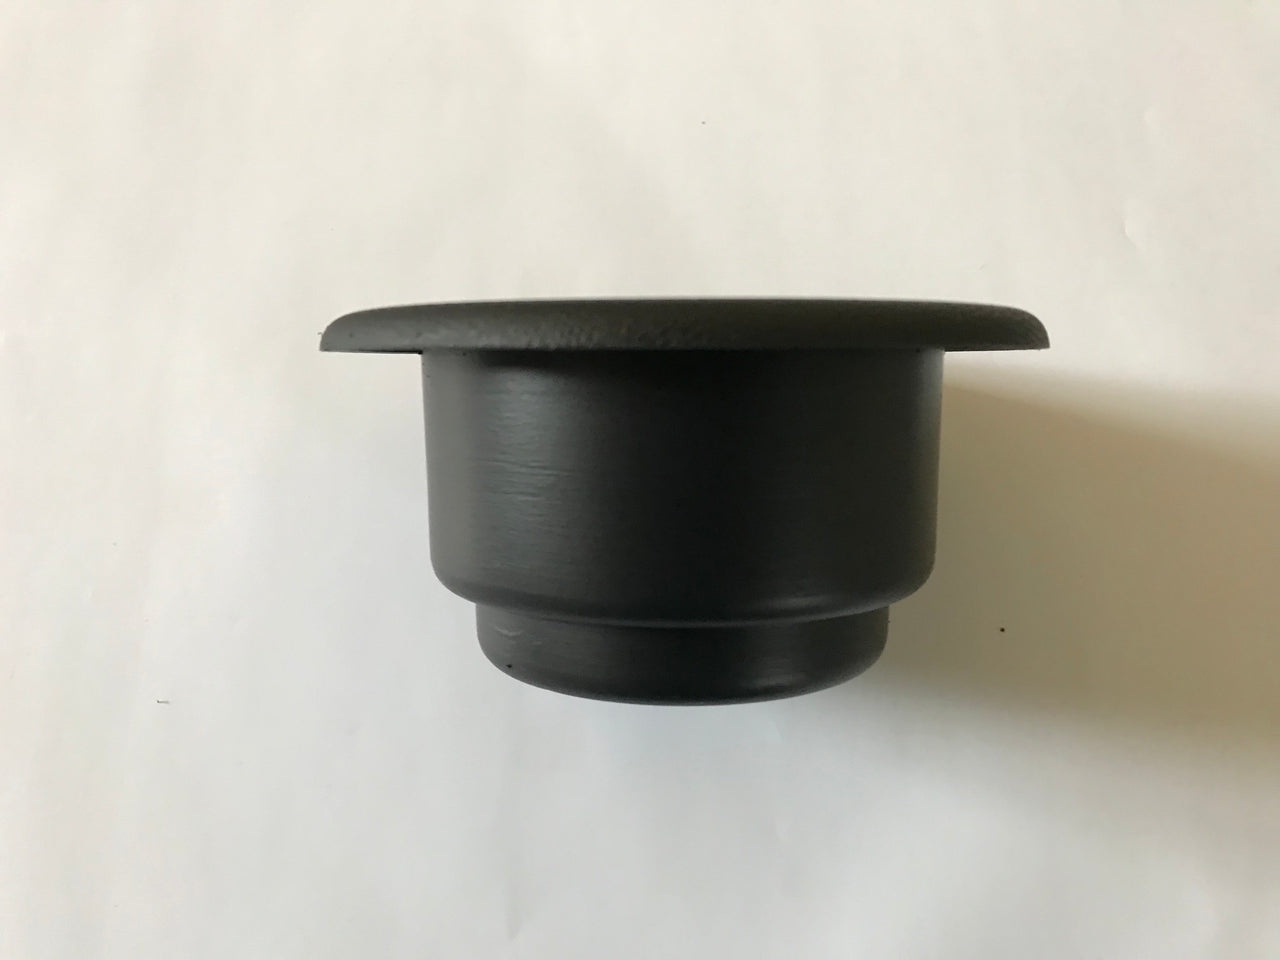 CUP HOLDER 2 TIER 33136